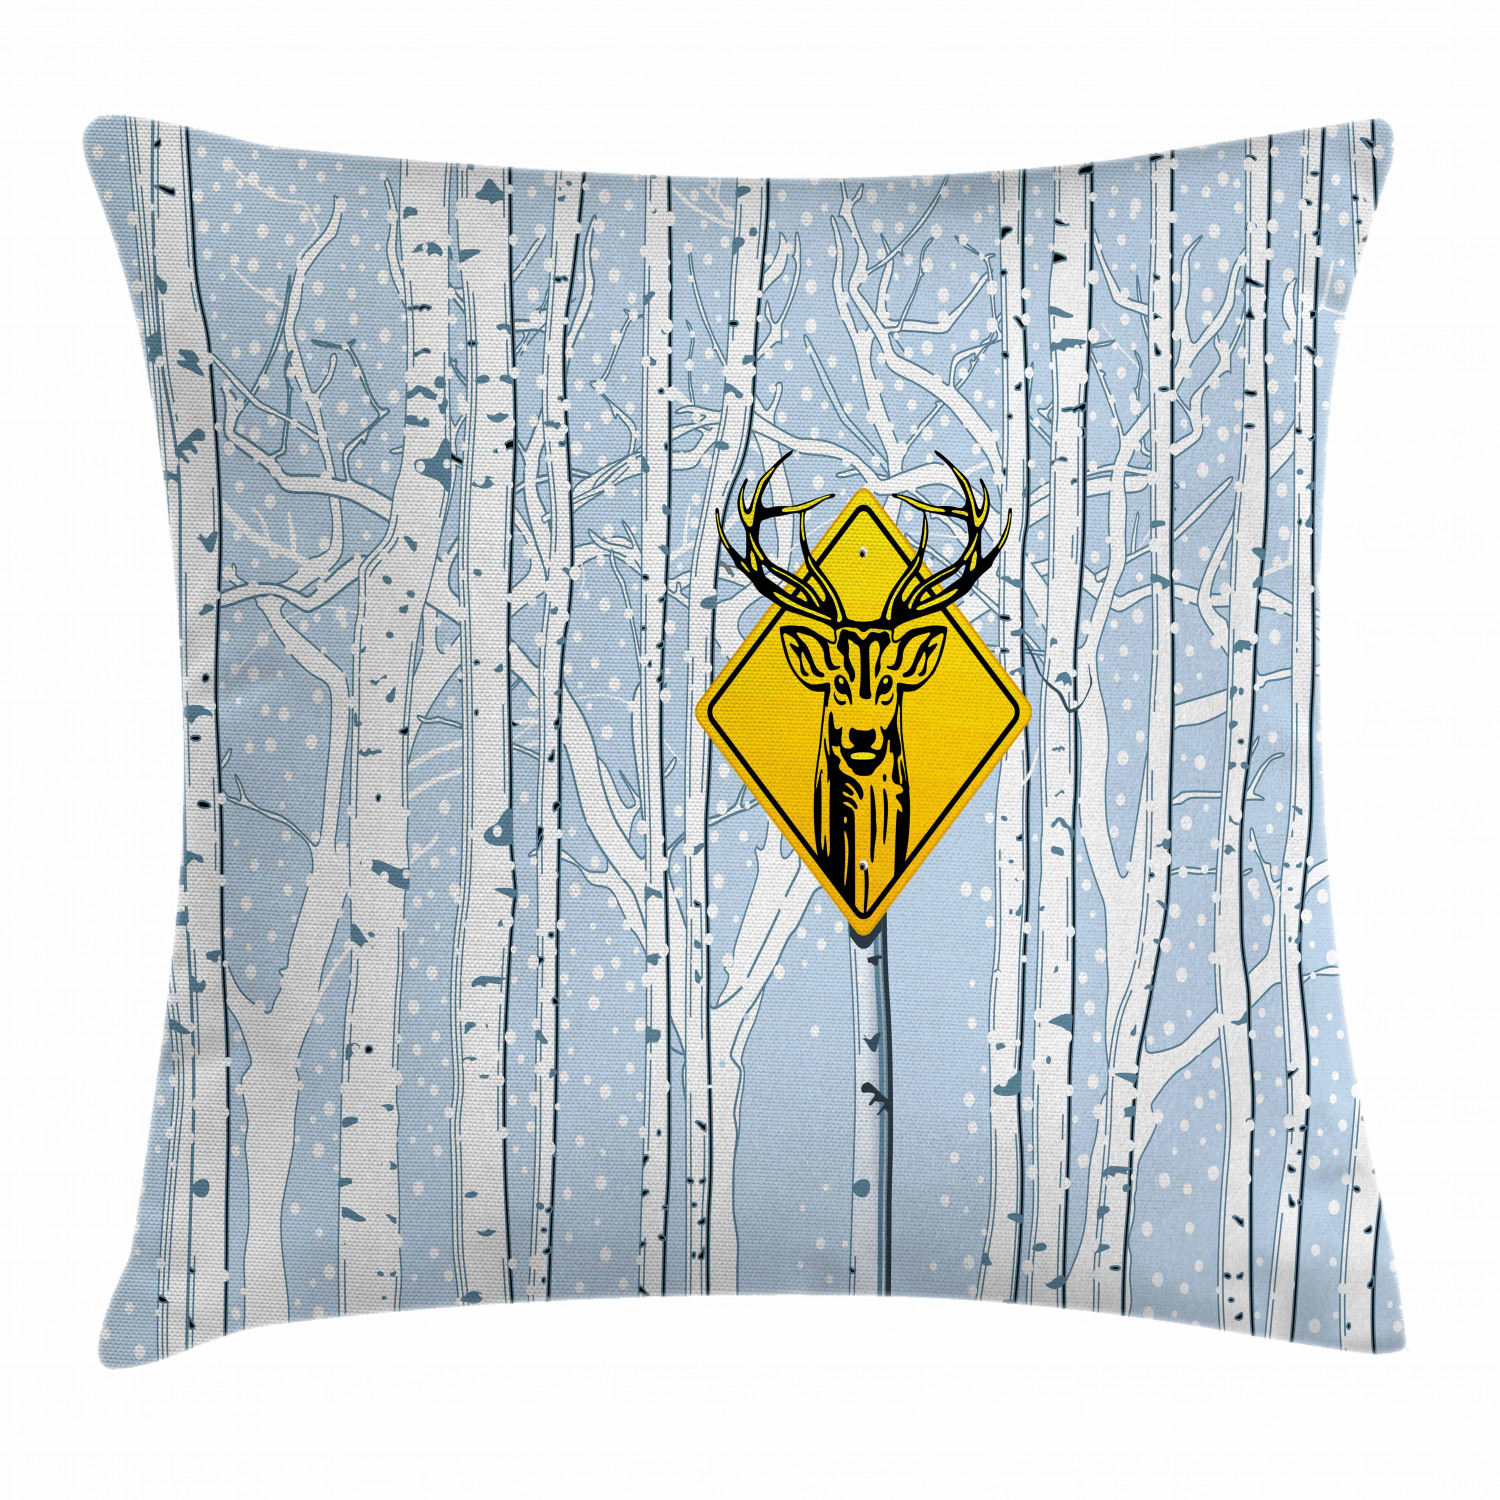 Spanish Throw Pillow Cases Cushion Covers Home Decor 8 Sizes Ambesonne